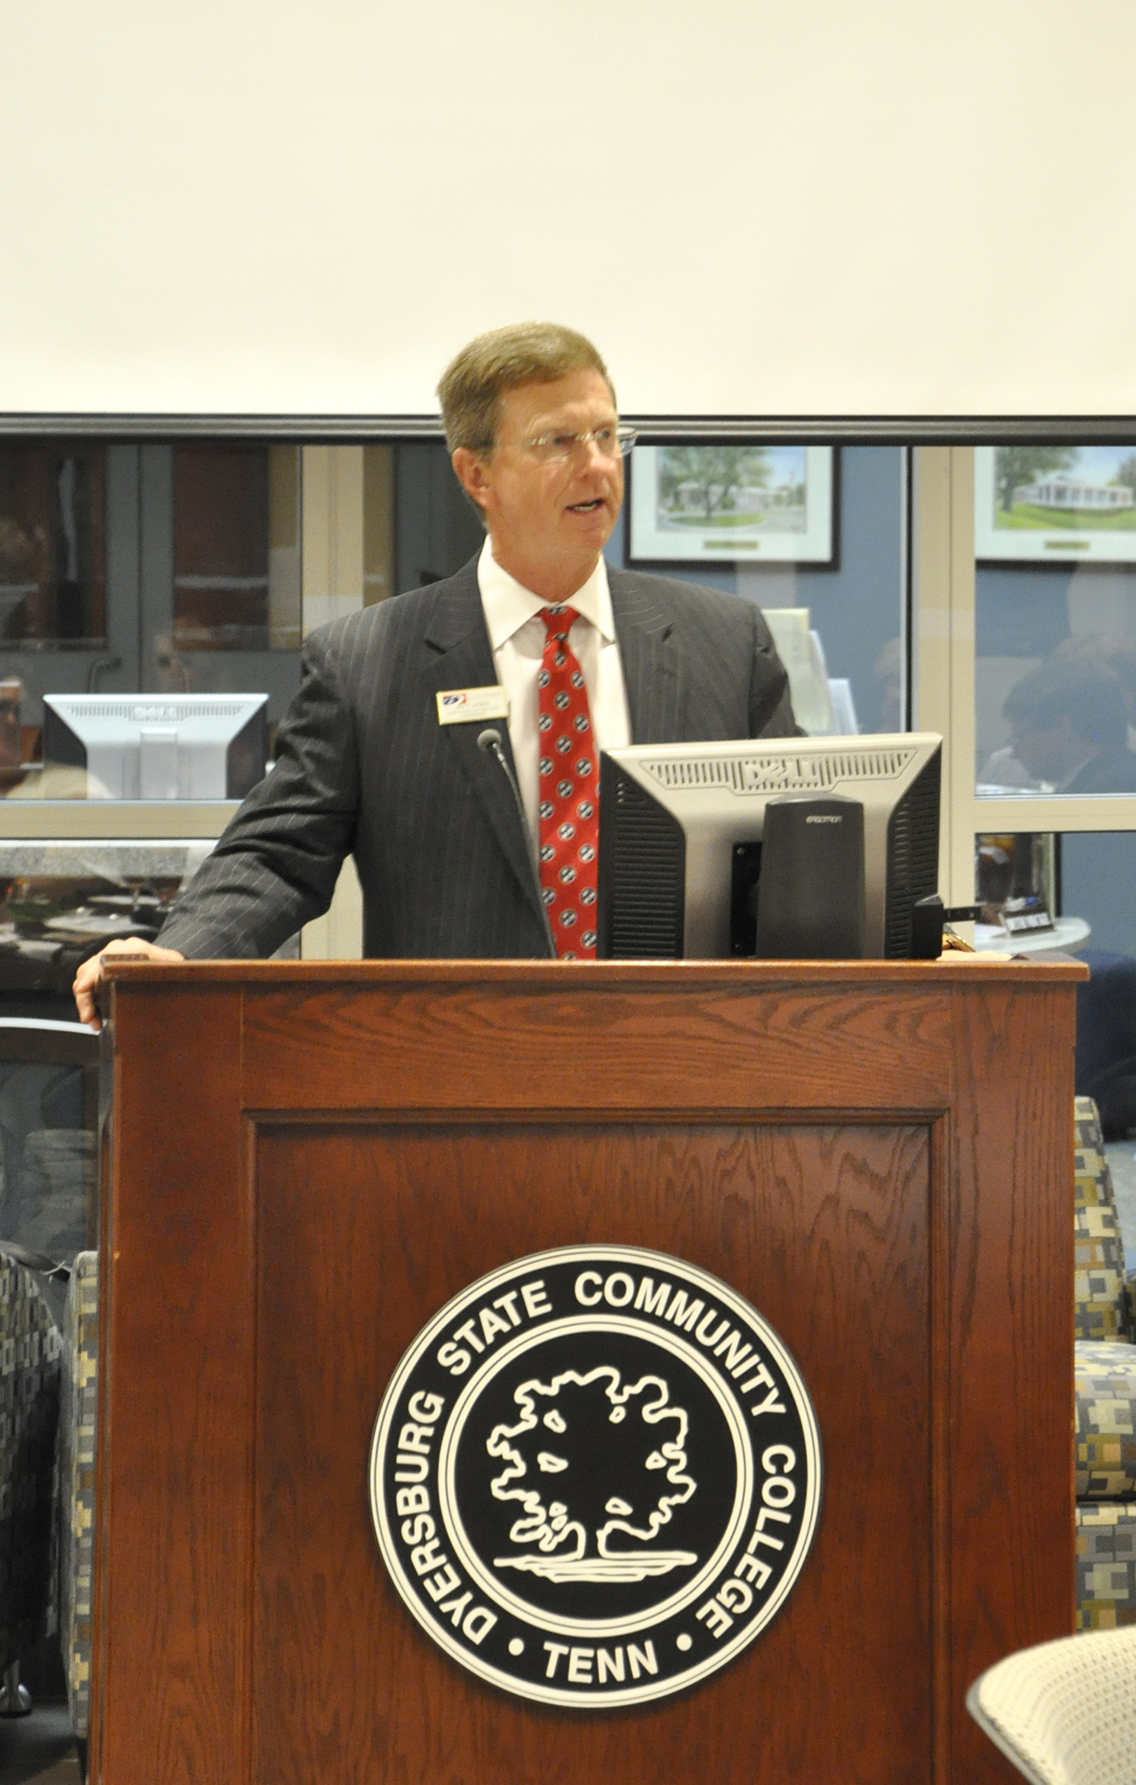 Jeff Agee, vice chair of the DSCC Foundation board of directors, addressed over 50 guests during DSCC's annual Foundation board meeting and dinner Nov. 15.